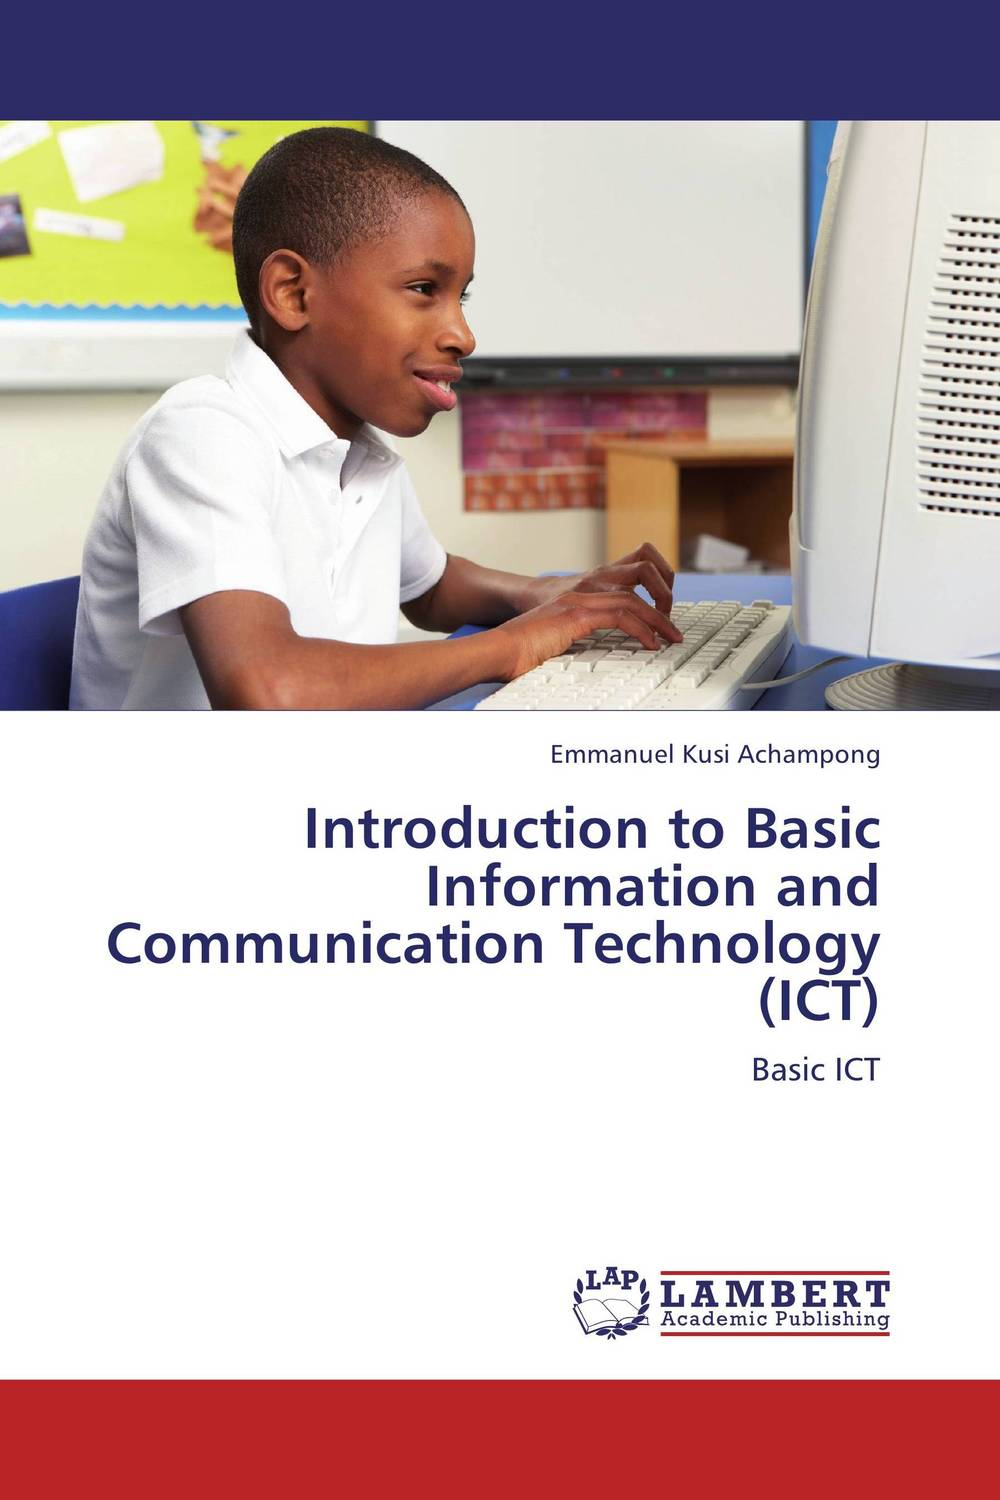 Introduction to Basic Information and Communication Technology (ICT)